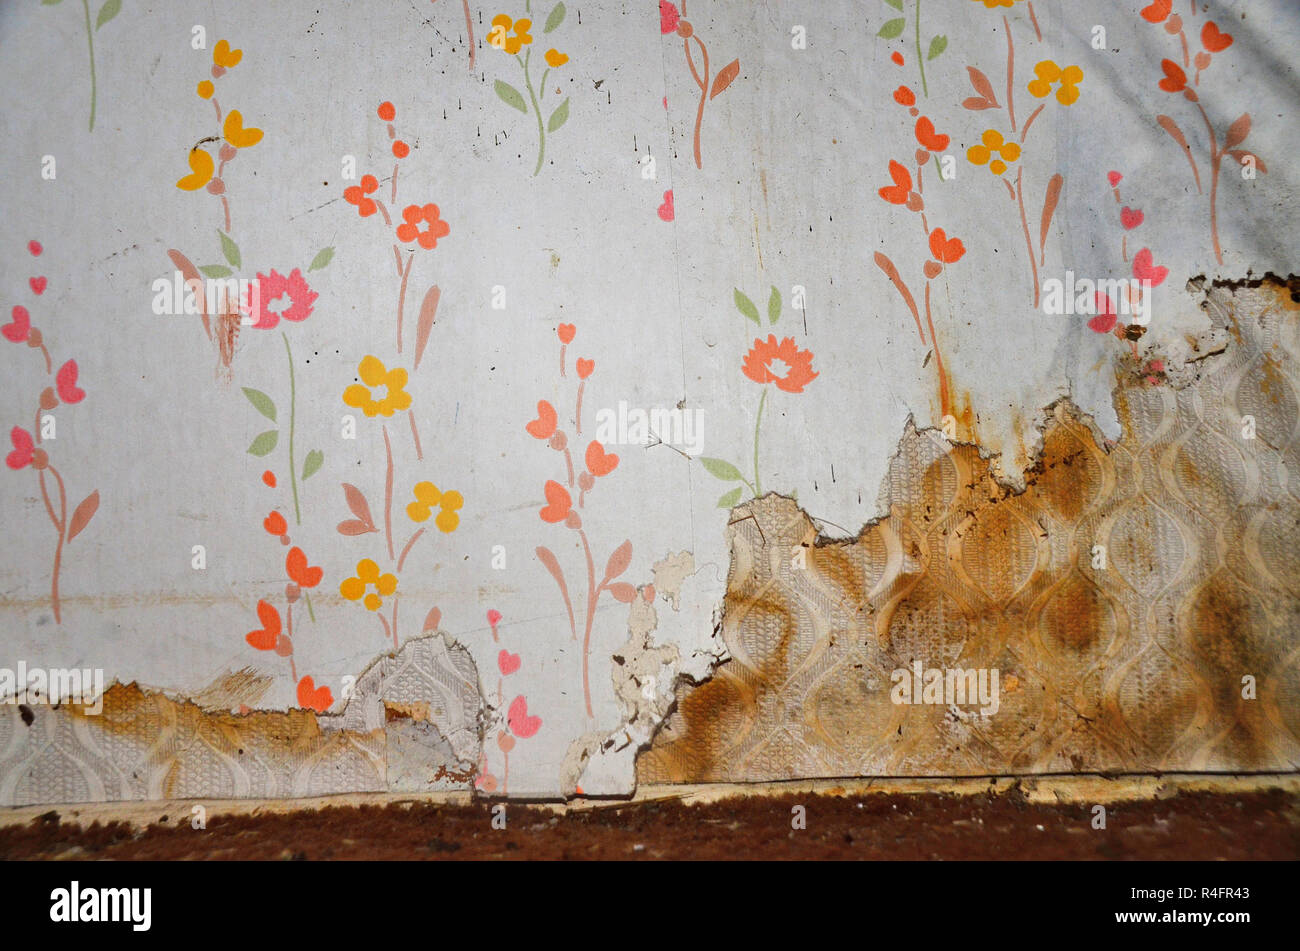 old floral wallpaper peeling off the wall due to  damp. - Stock Image